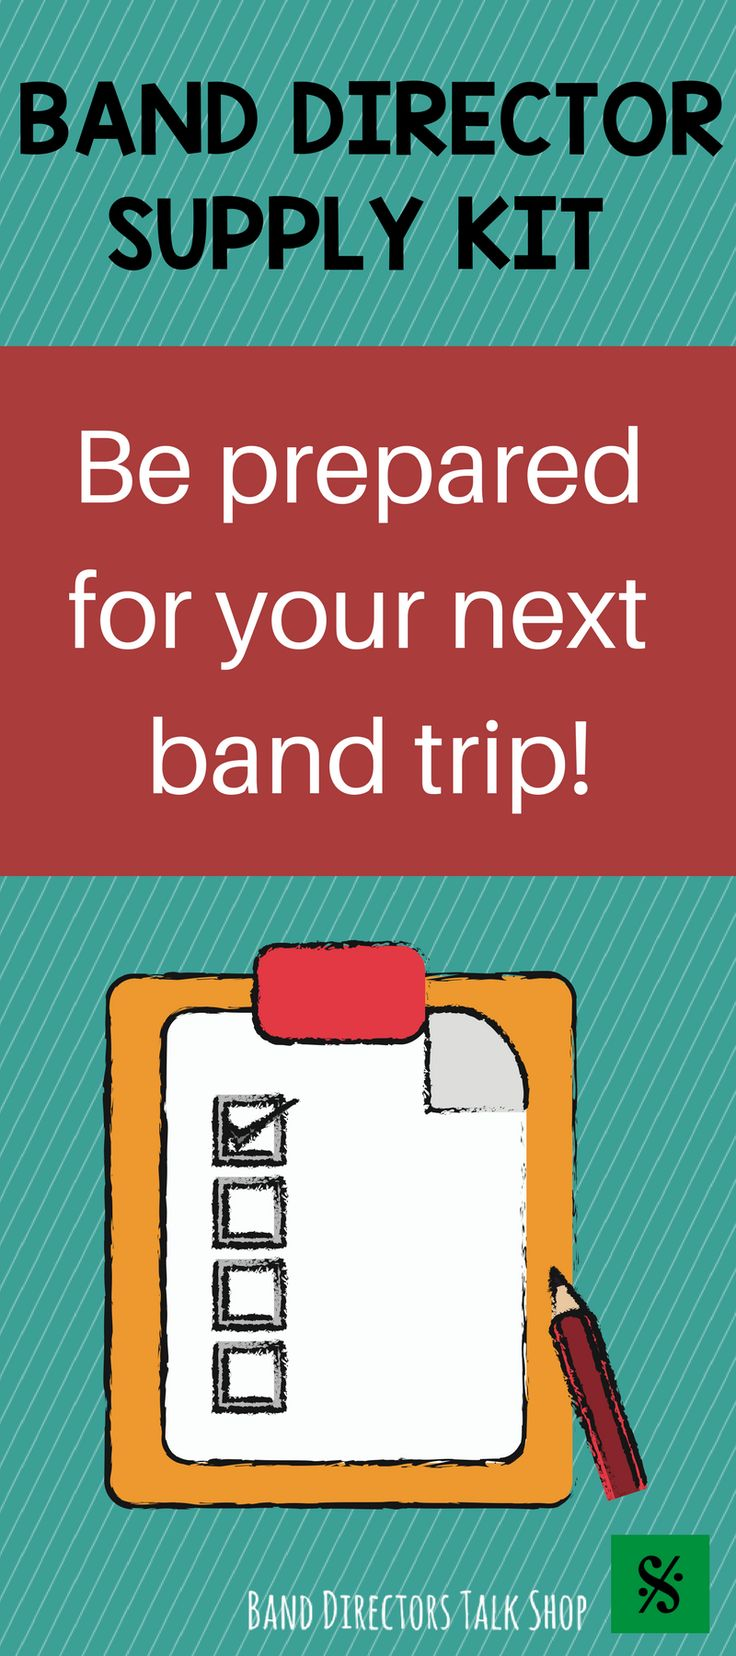 Band directors, click here for a great list of things to pack for your next band trip or out of town performance with your ensemble. http://banddirectorstalkshop.com/2017/05/03/supply-kit-for-band-trips/